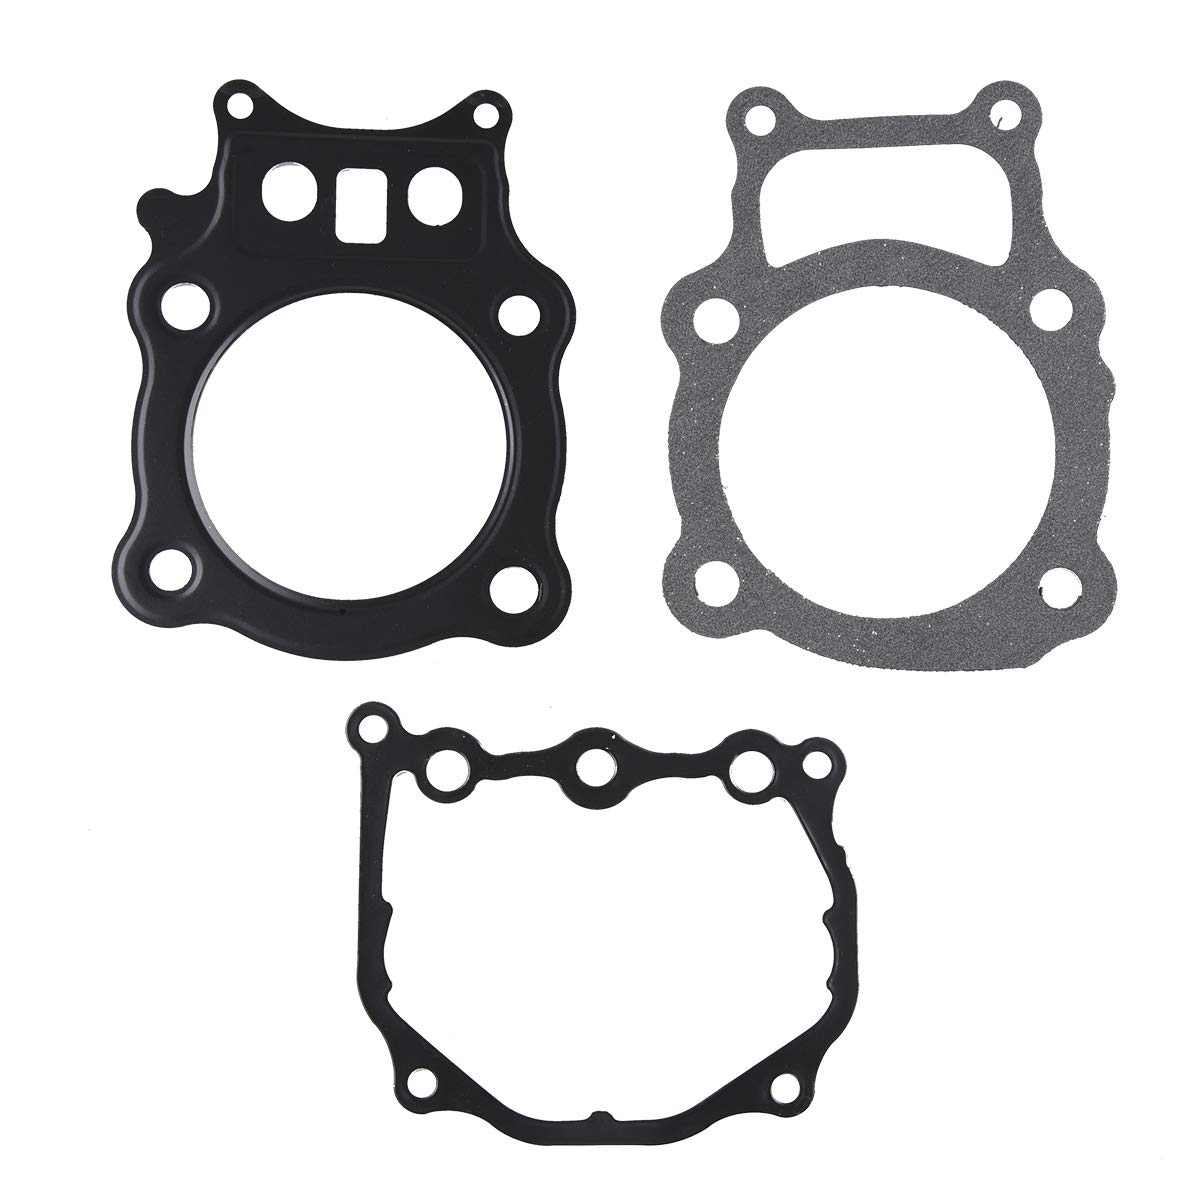 Top End Head Gasket Kits Fit for Rancher 350 TRX 350 2000-2006